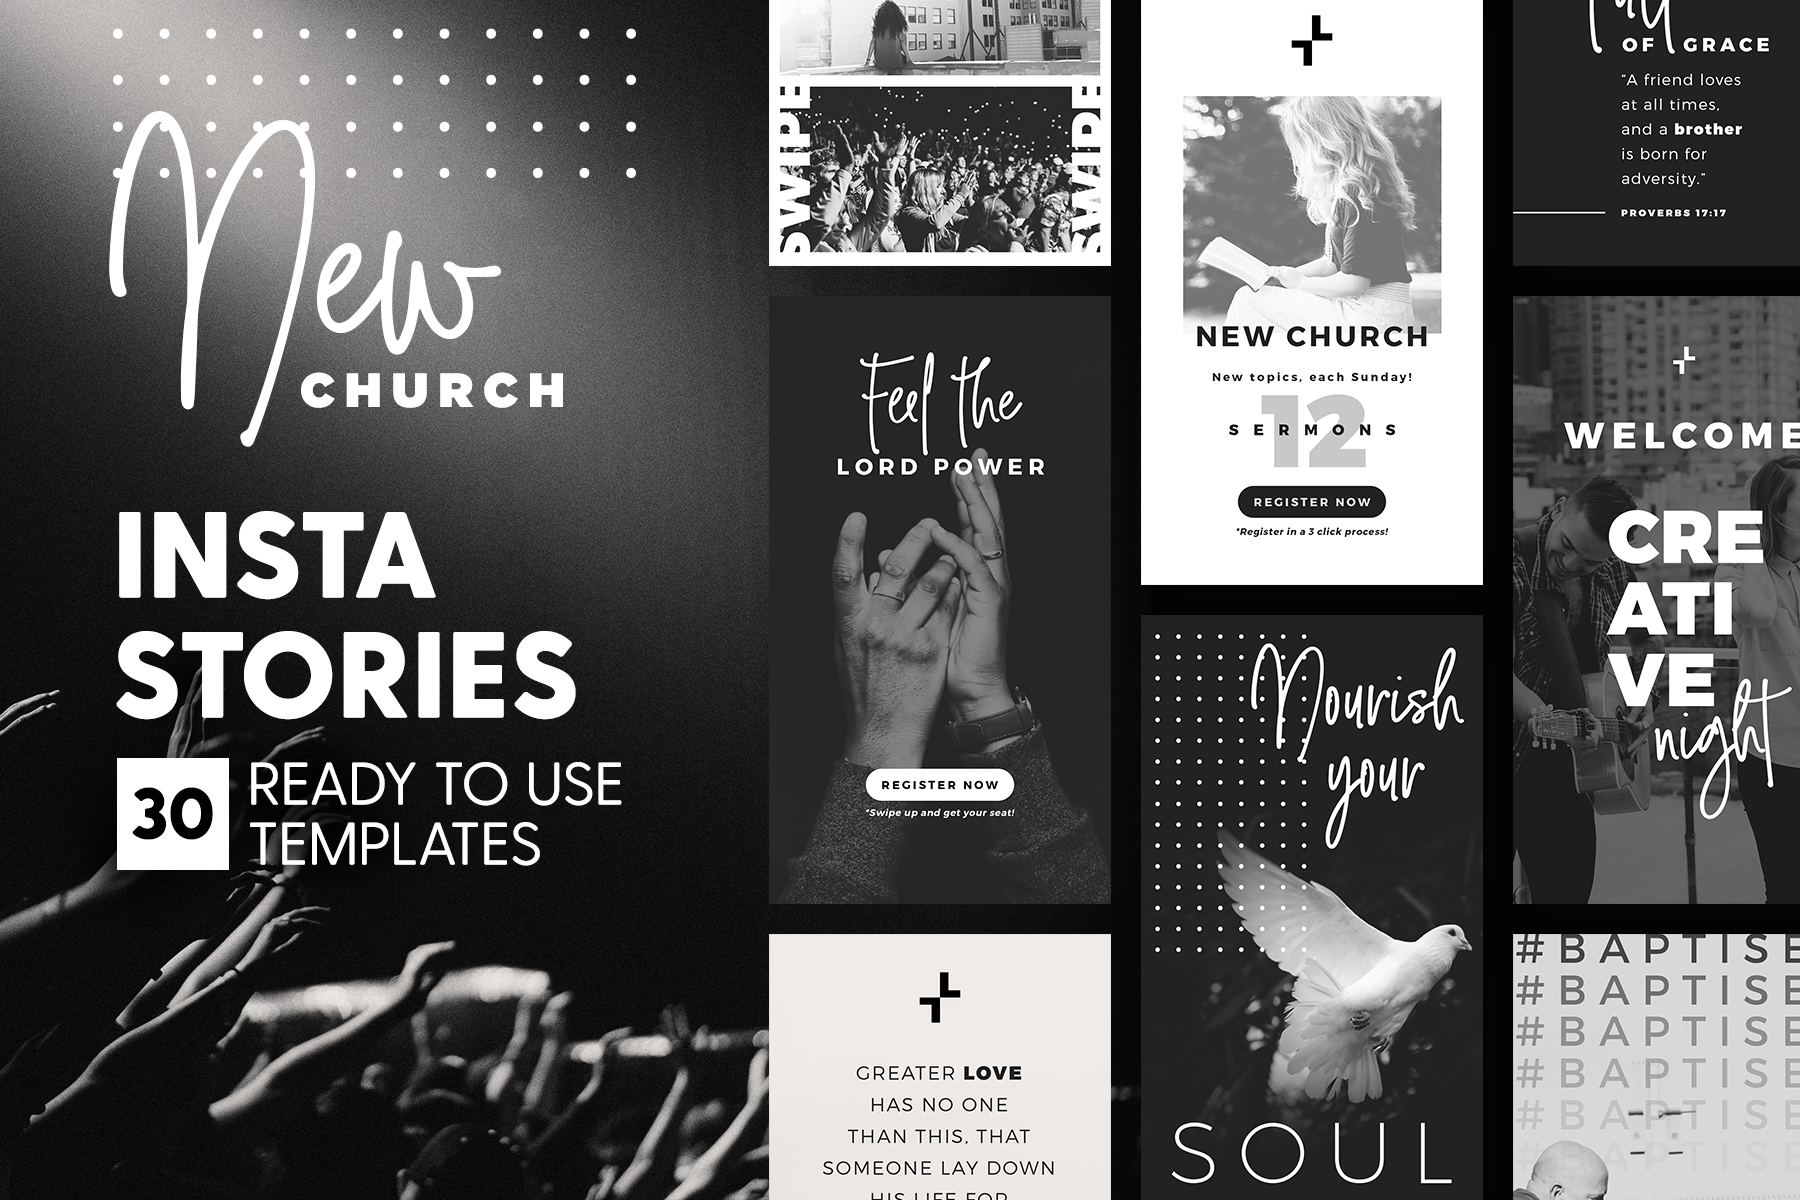 Instagram Stories - New Church Edition Graphic Presentation Templates By lavie1blonde - Image 1